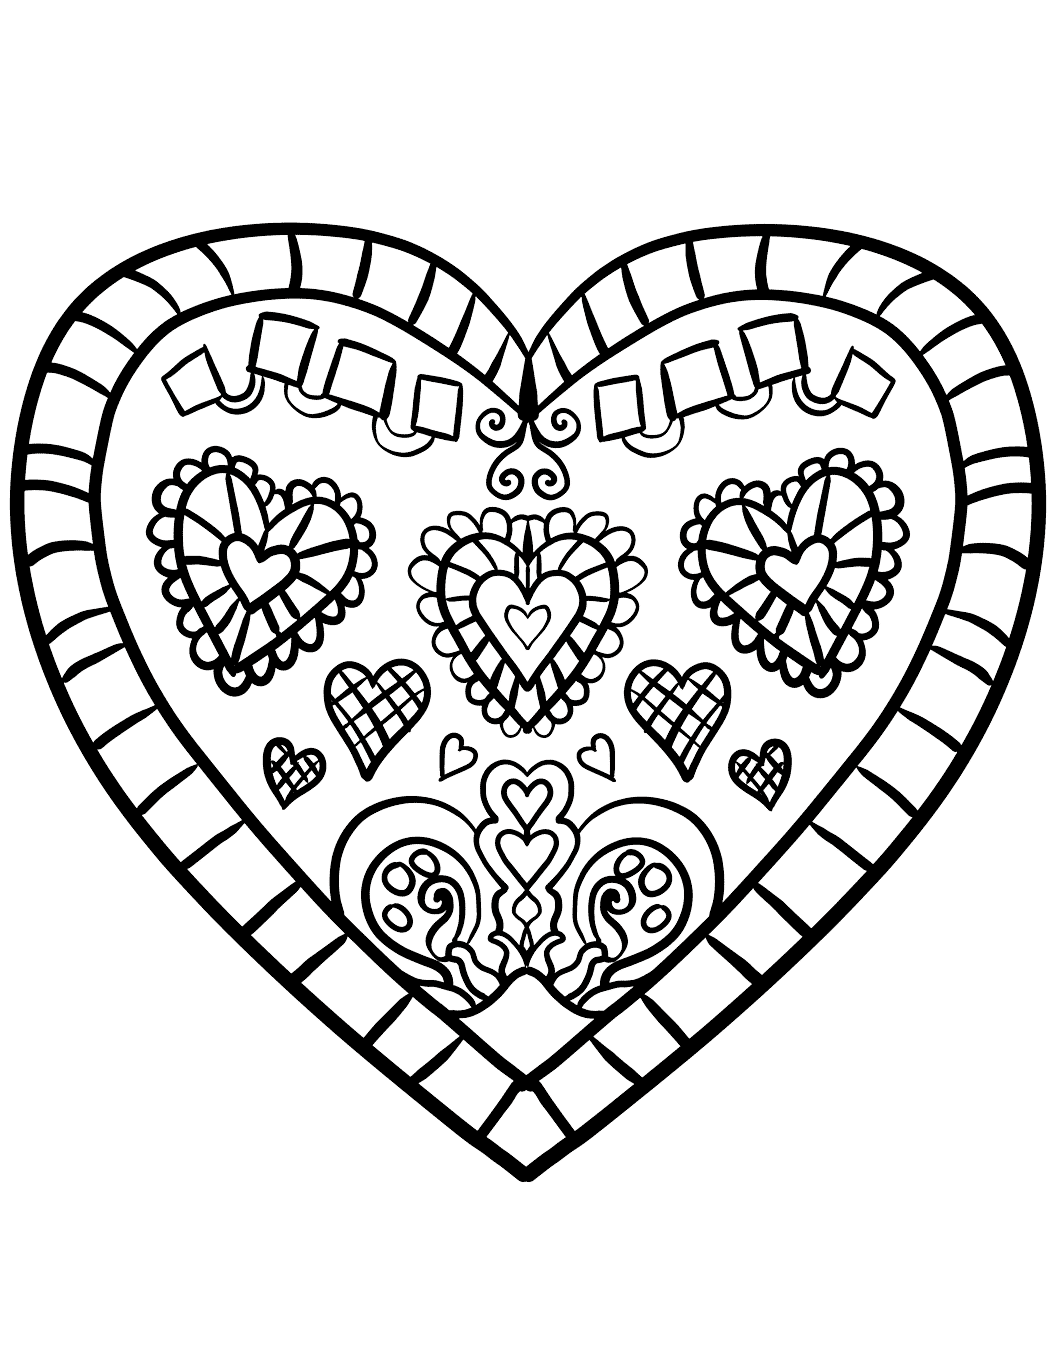 free printable heart coloring pages for kids free printable heart templates diy 100 ideas printable heart pages for kids free coloring